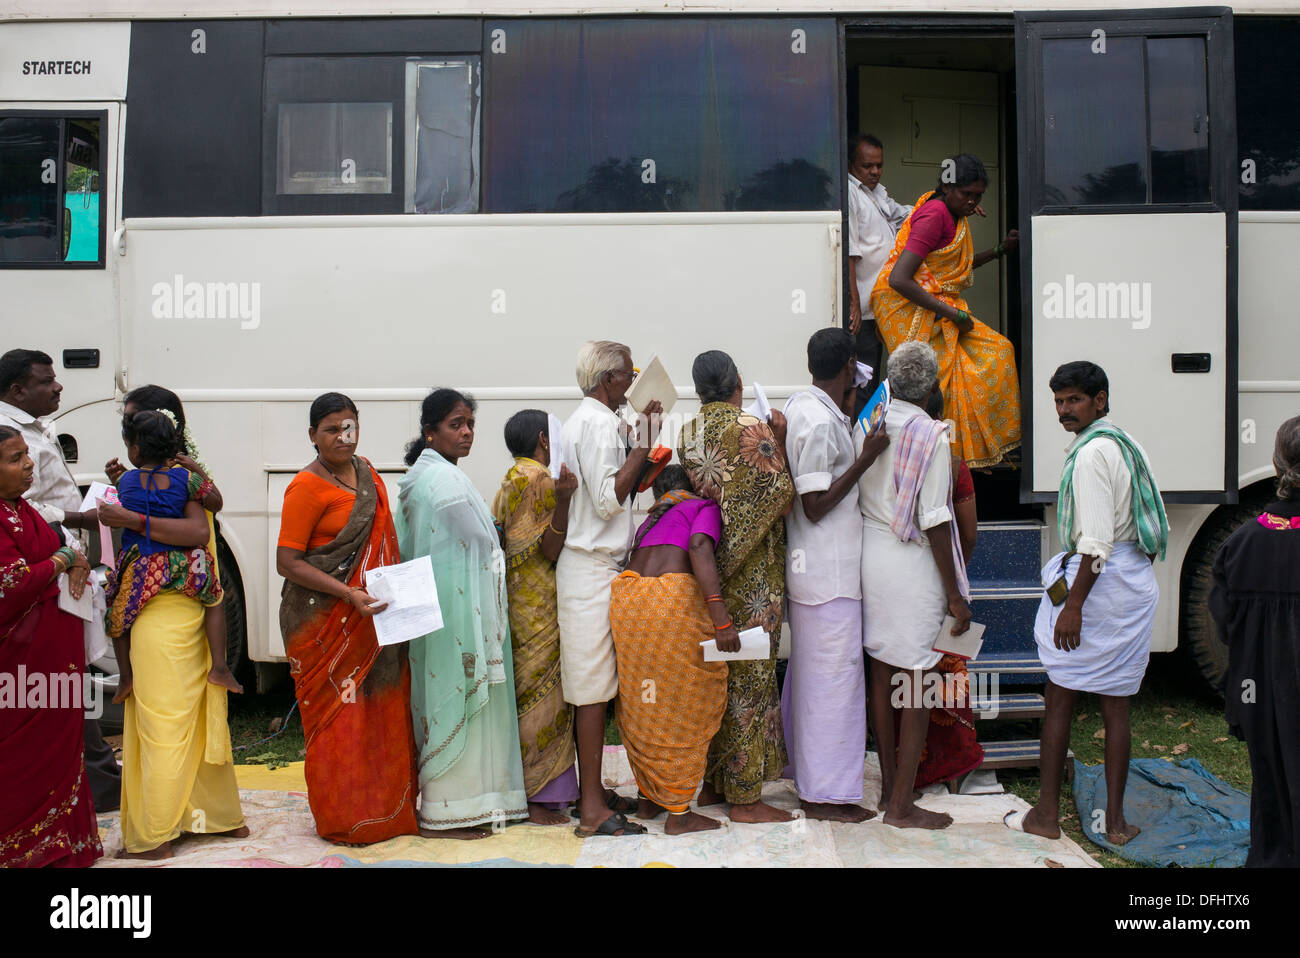 Patients queuing for testing in the Sri Sathya Sai Baba mobile Stock